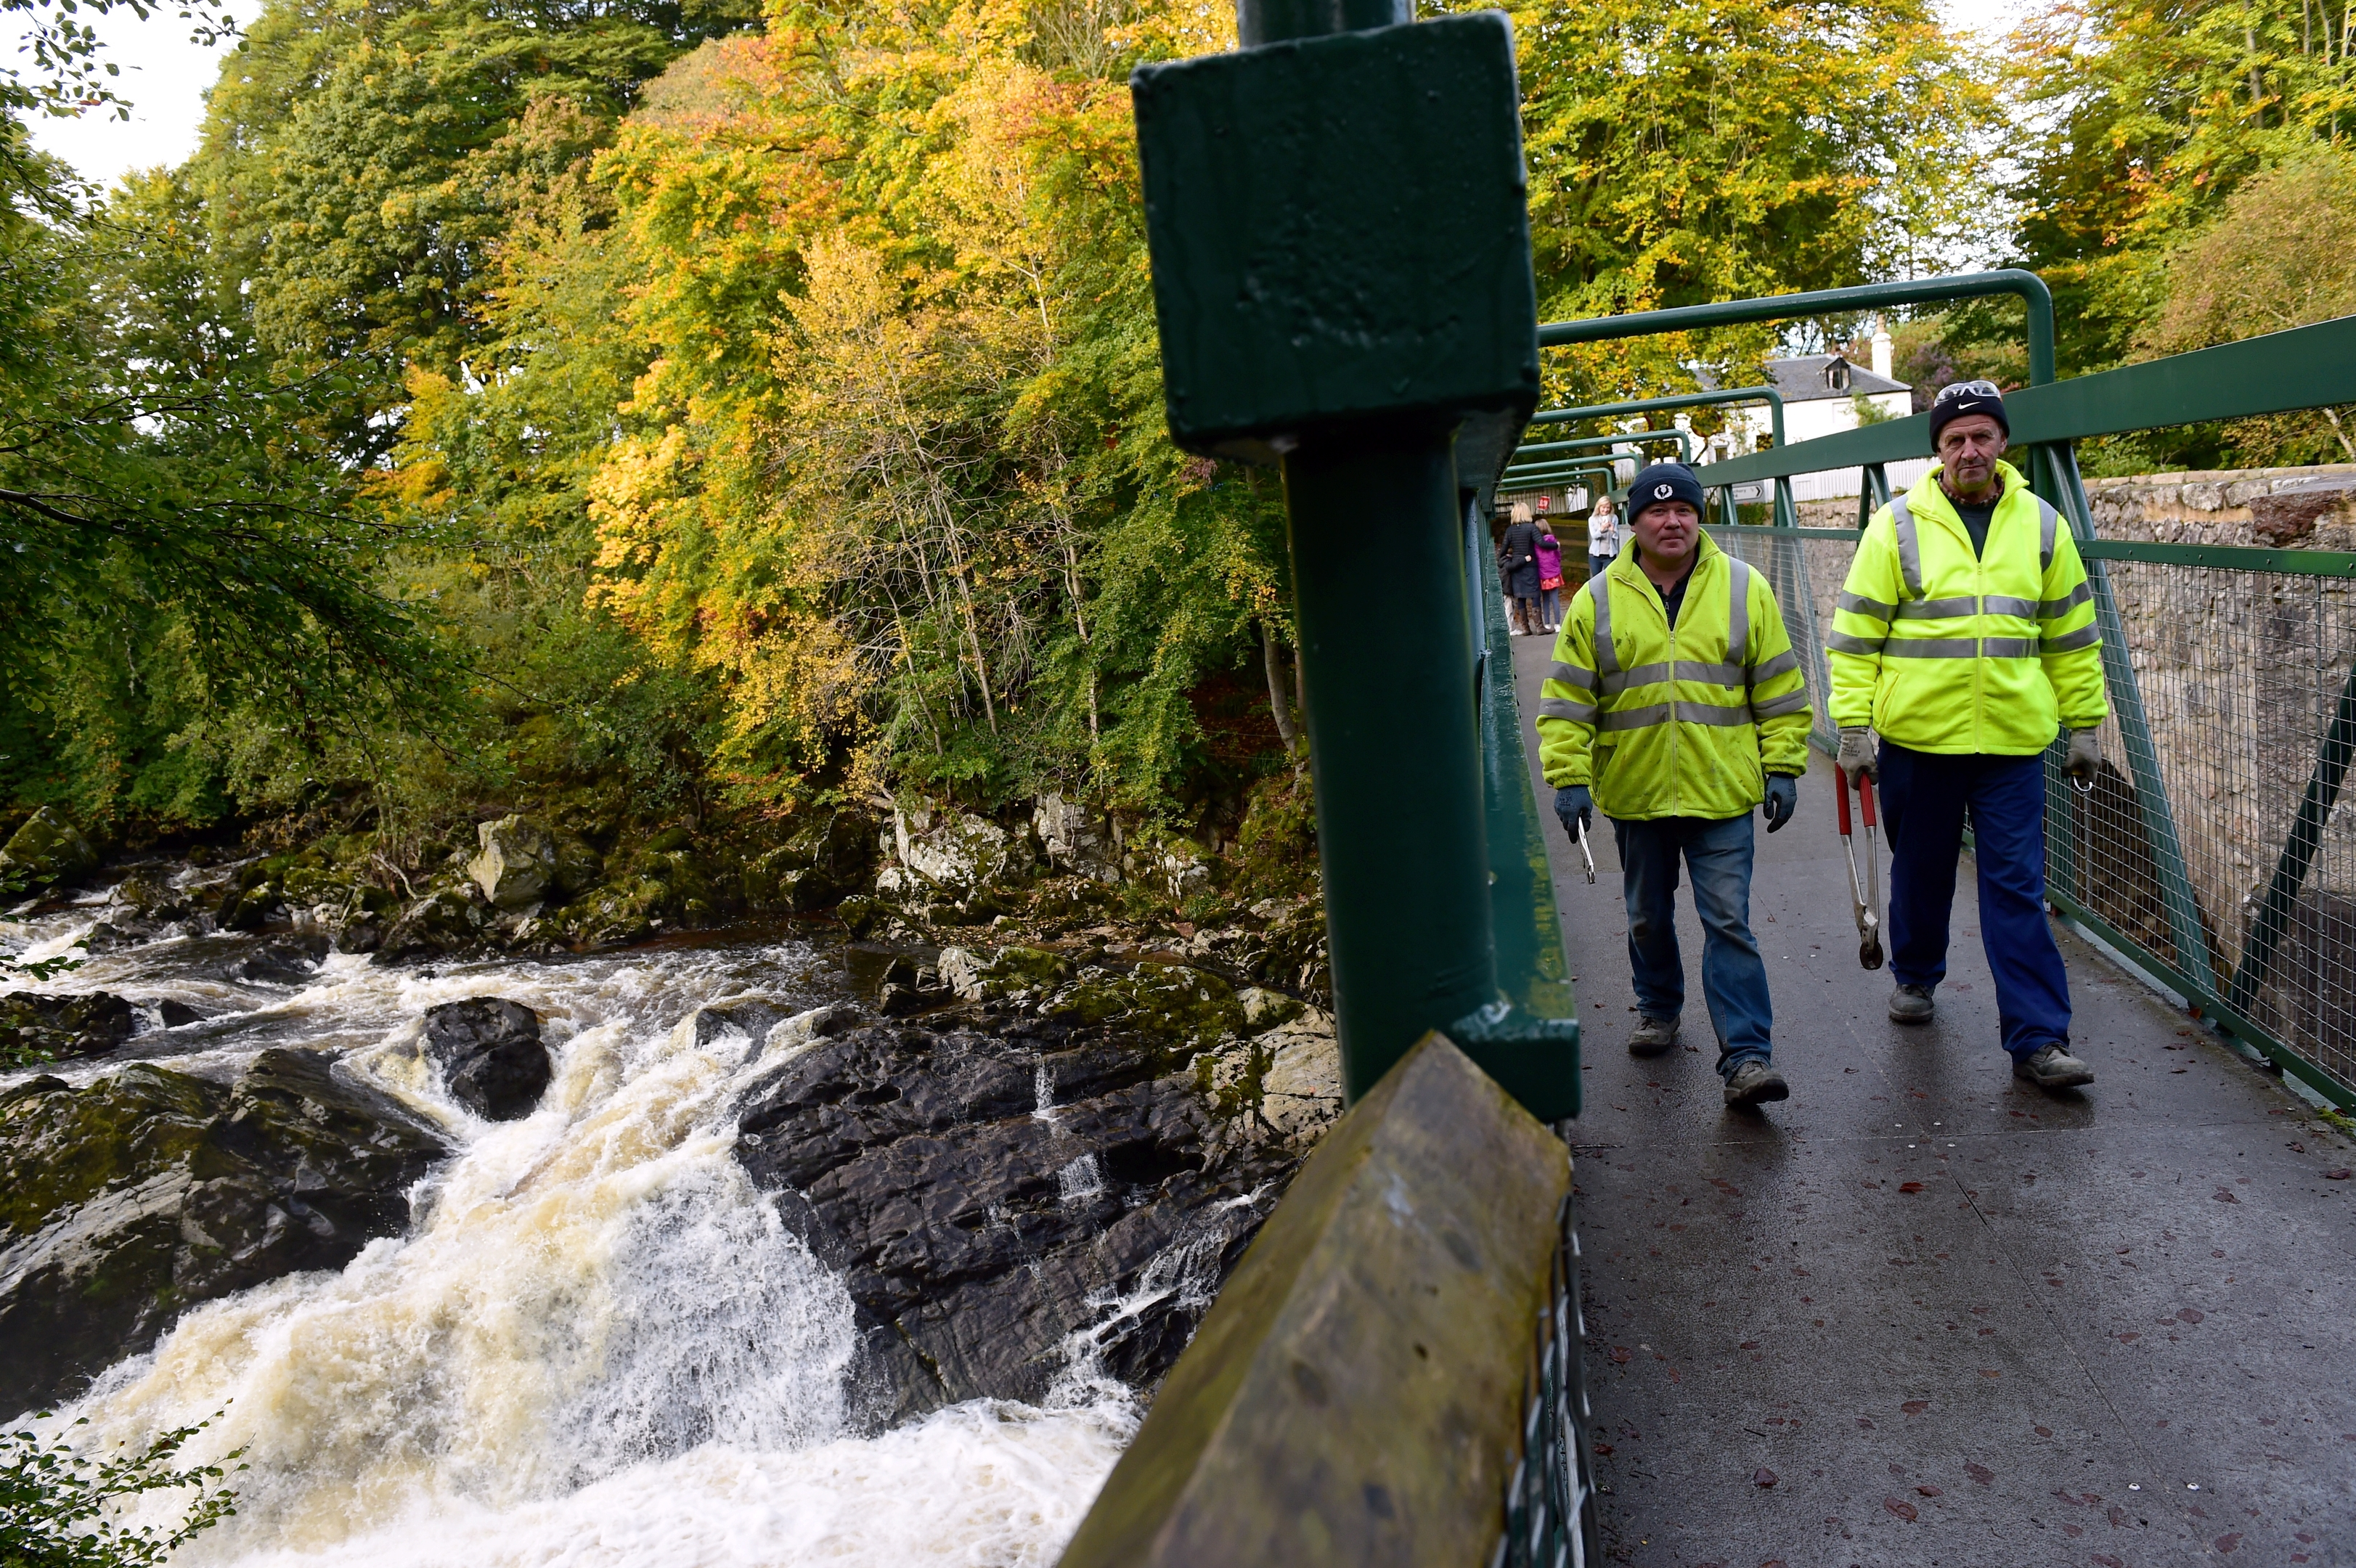 Aberdeenshire Council workers were removing the padlocks from the Falls of Feugh bridge over fears it may damage the structure and have erected a sculpture for people to take selfies instead.    Pictures by Kami Thomson